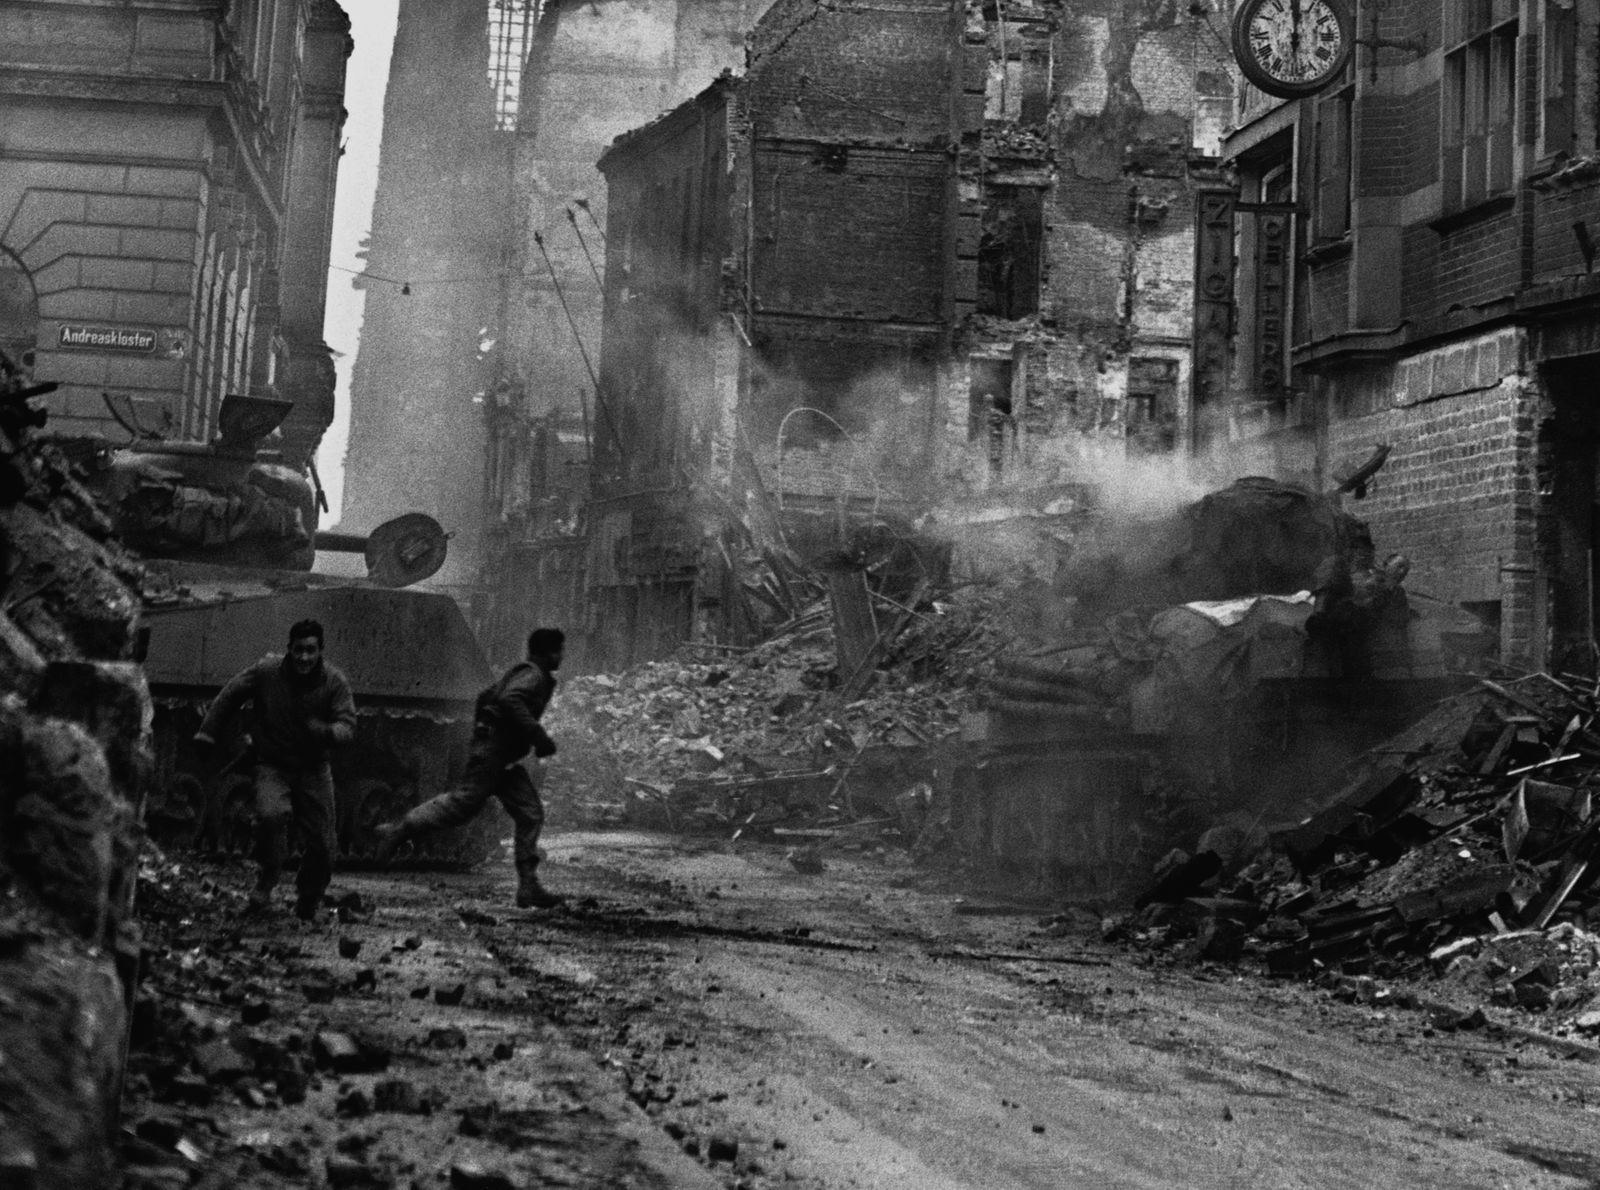 U.S. Soldiers Fighting in Cologne